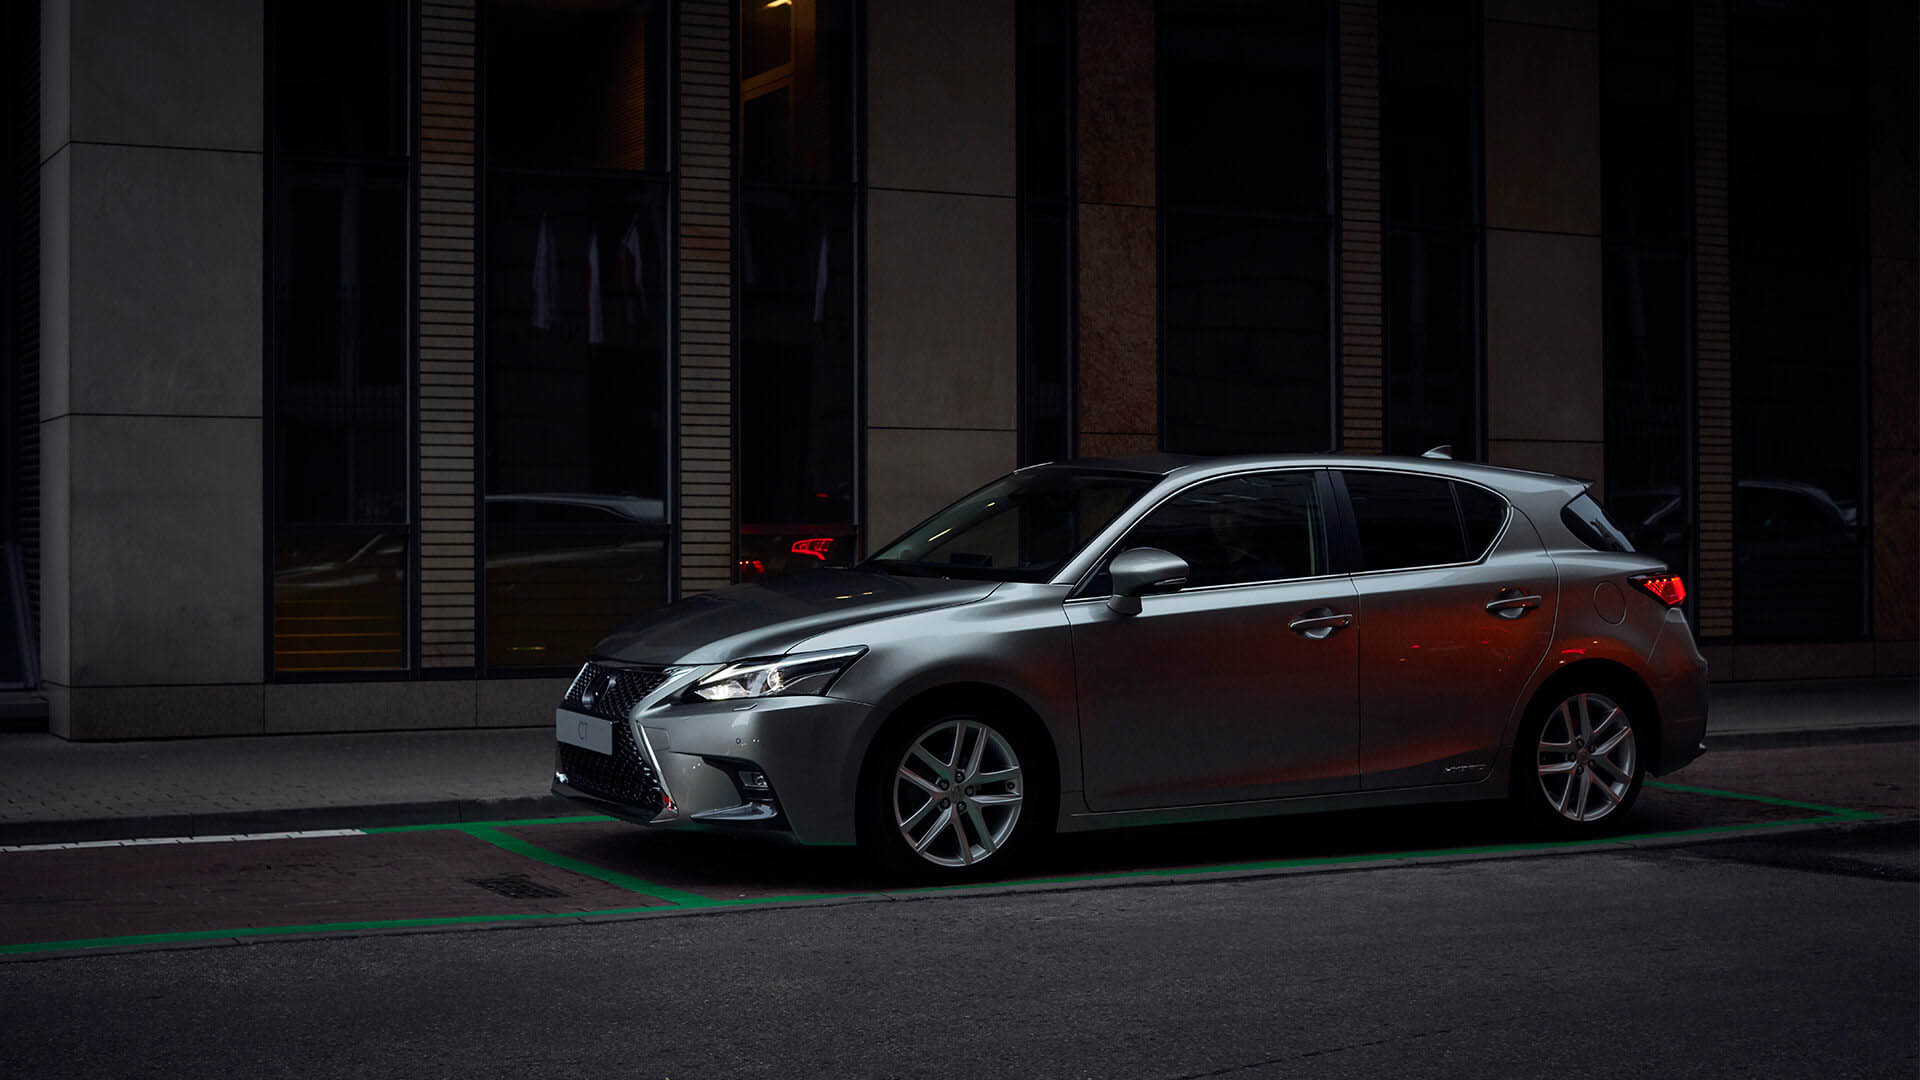 2018 lexus ct 200h my18 gallery 040 exterior